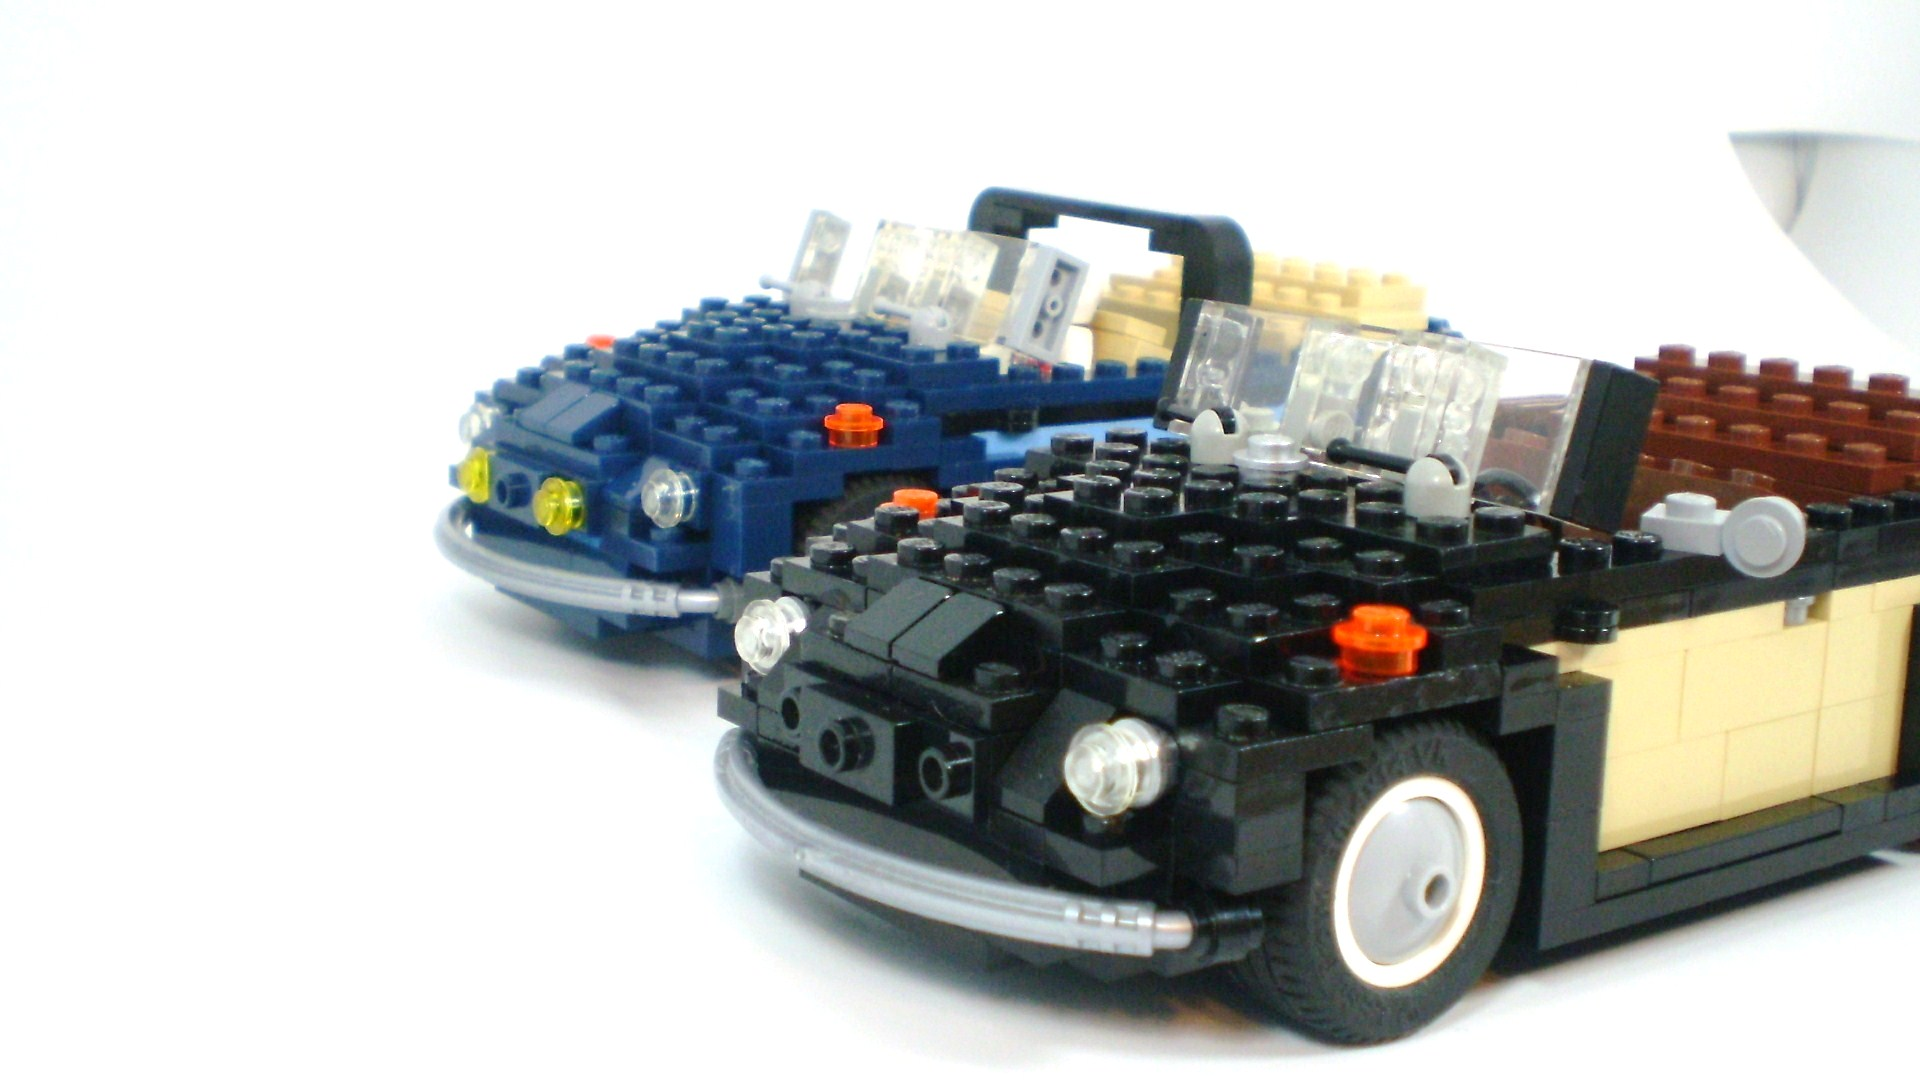 vw_beetle-studio_pair_04.jpg